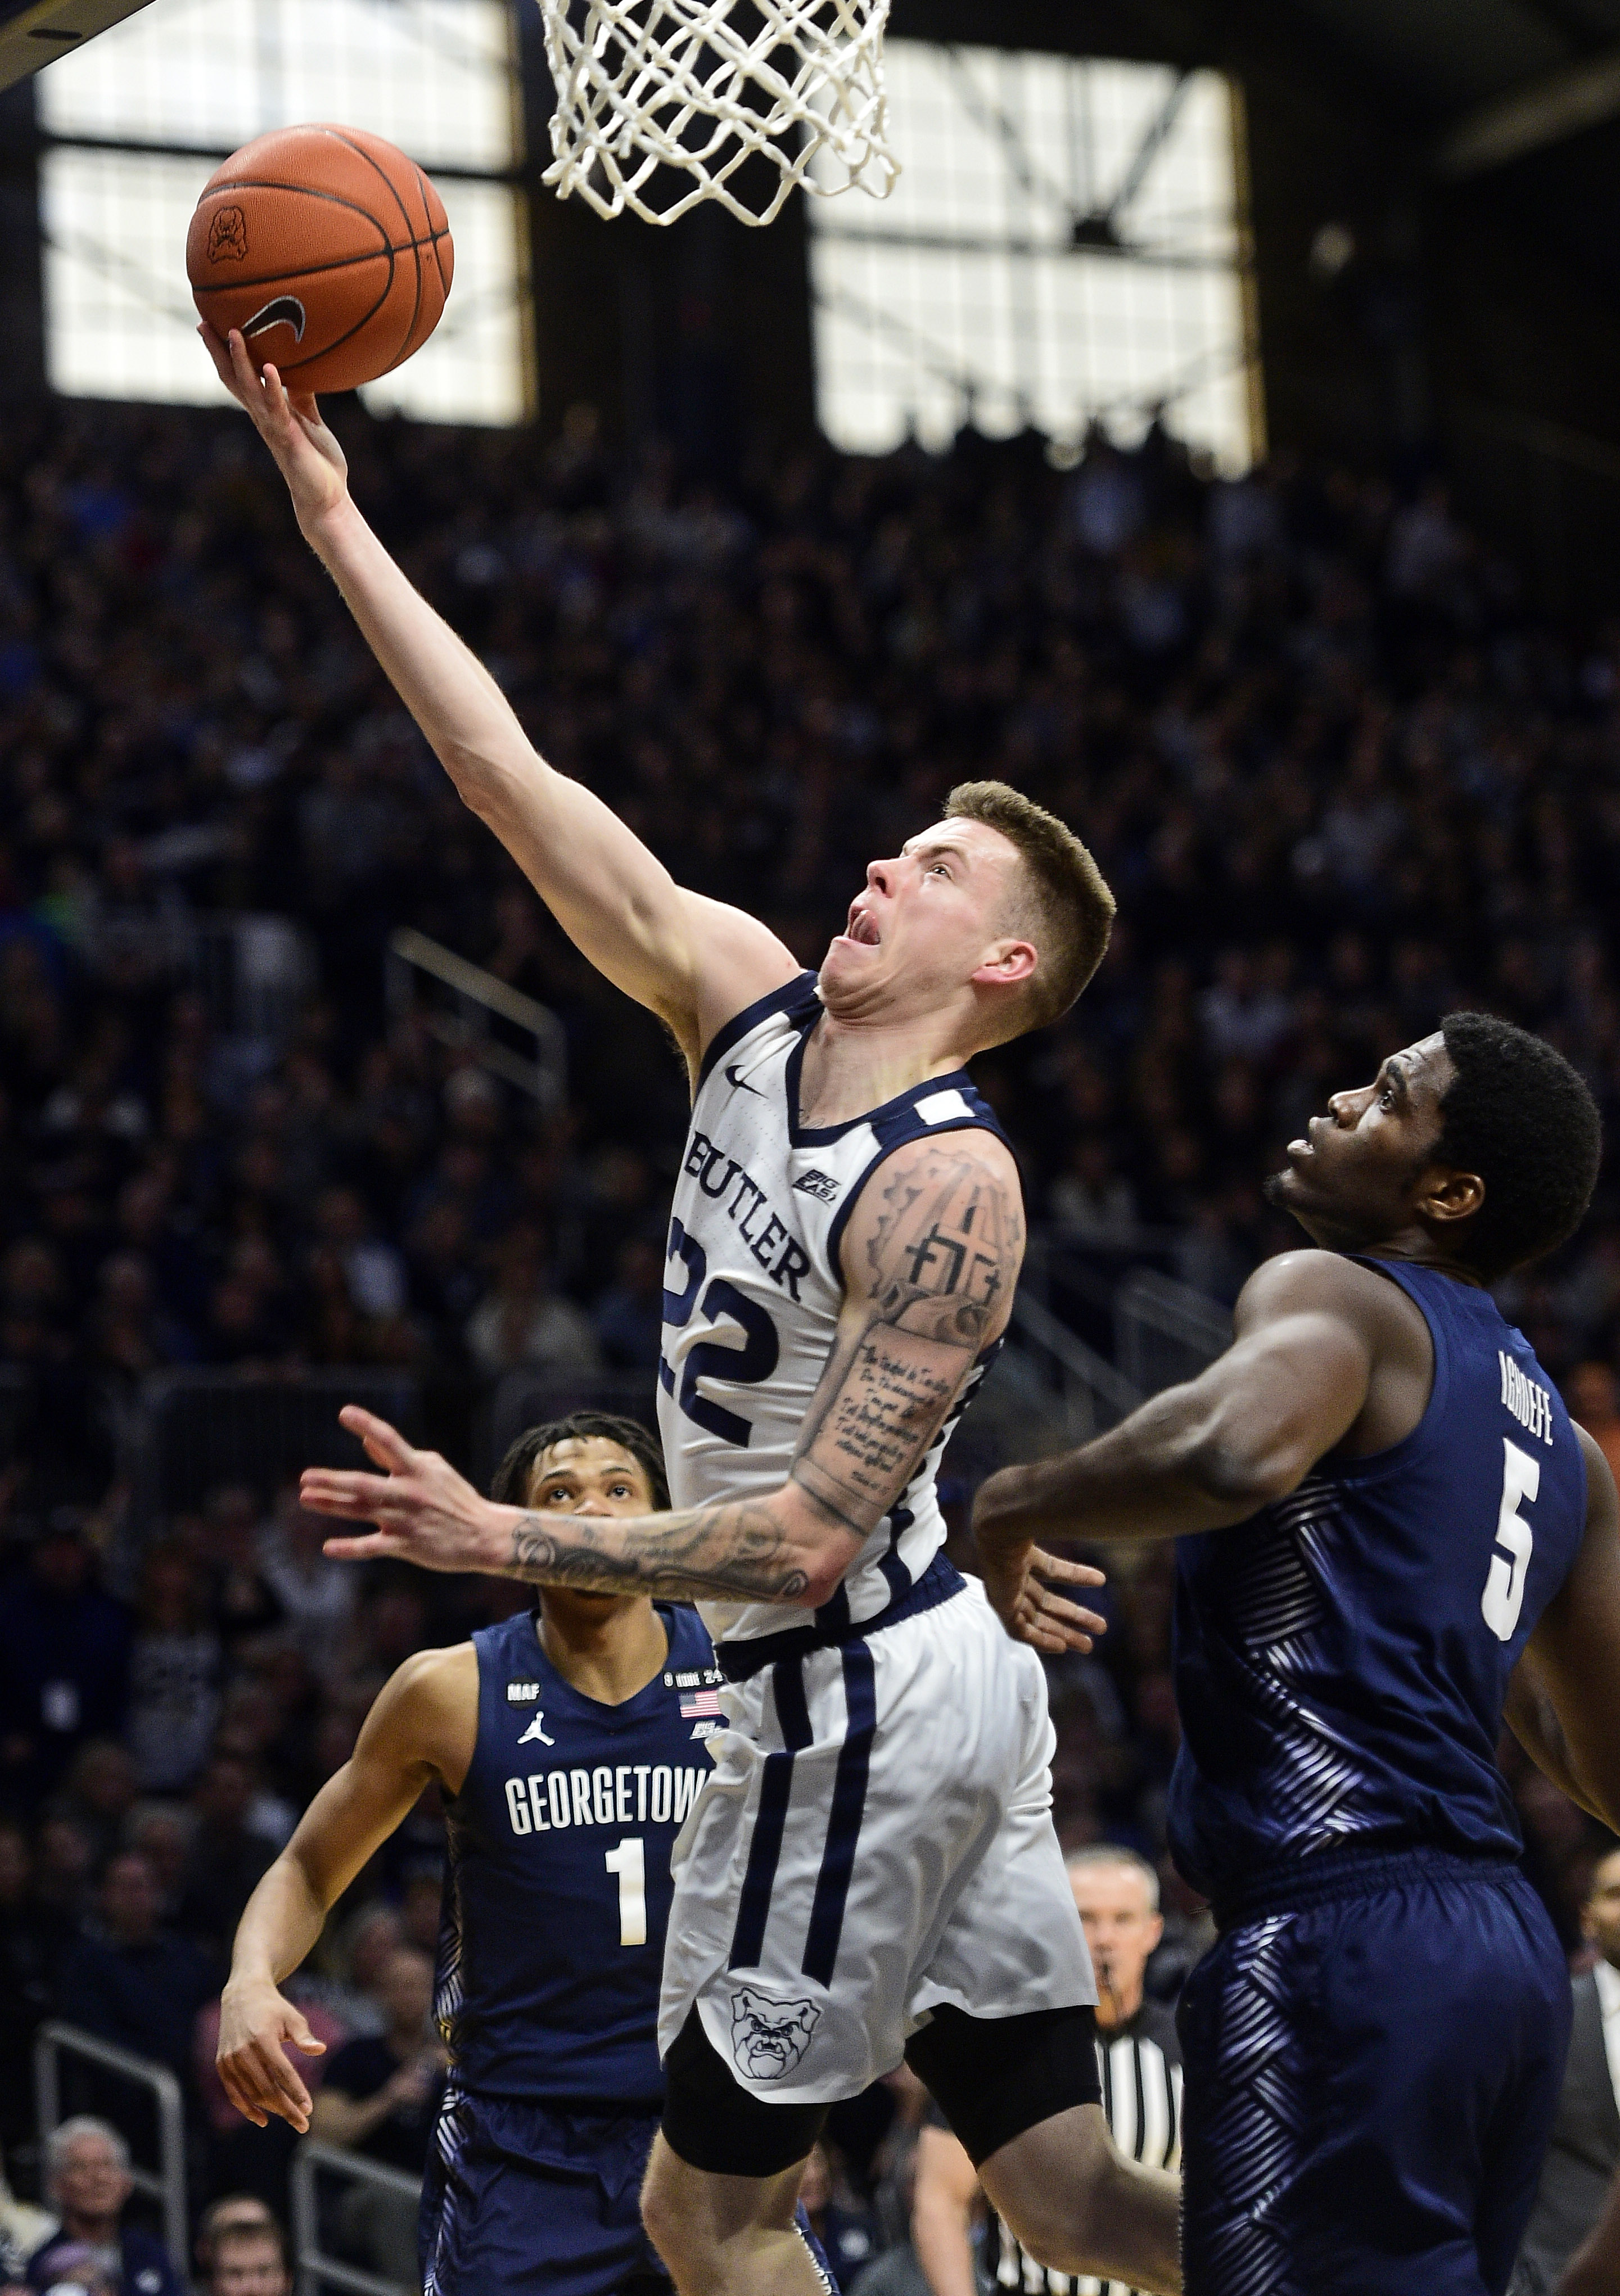 Butler Bulldogs forward Sean McDermott shoots the ball past past Georgetown Hoyas center Timothy Ighoefe at Hinkle Fieldhouse.